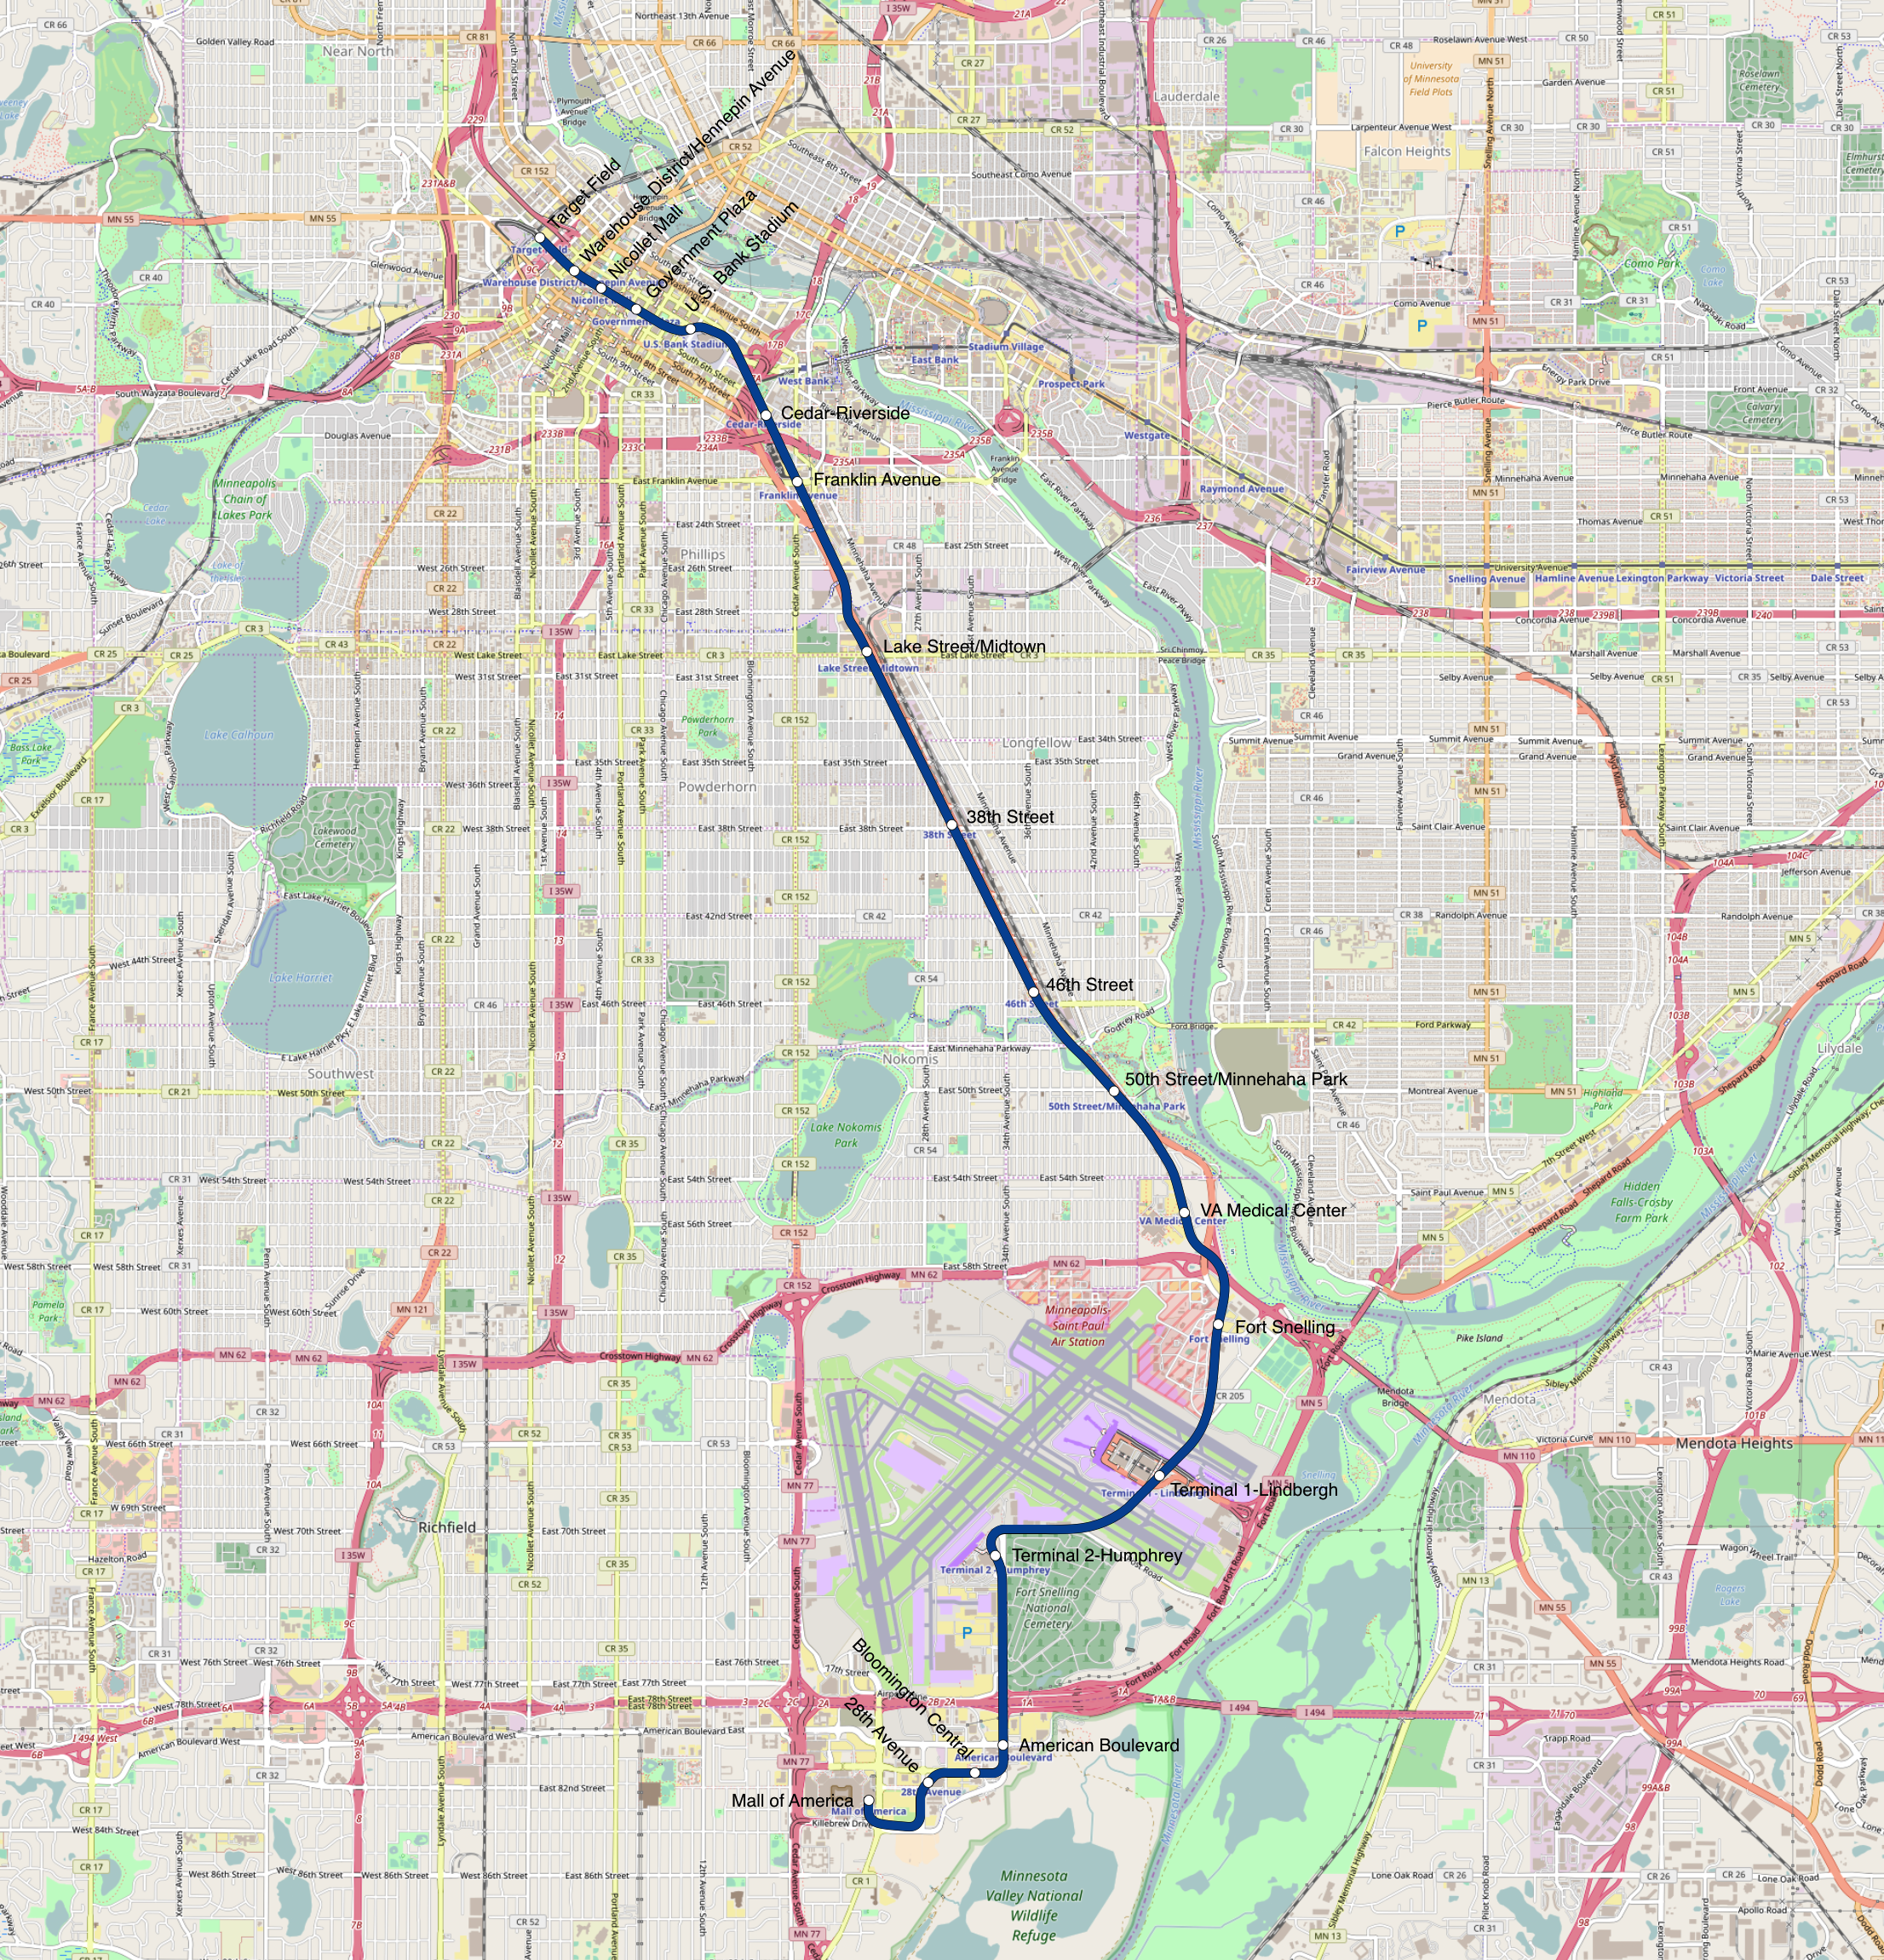 FileMinneapolis Blue Line Mappng Wikimedia Commons